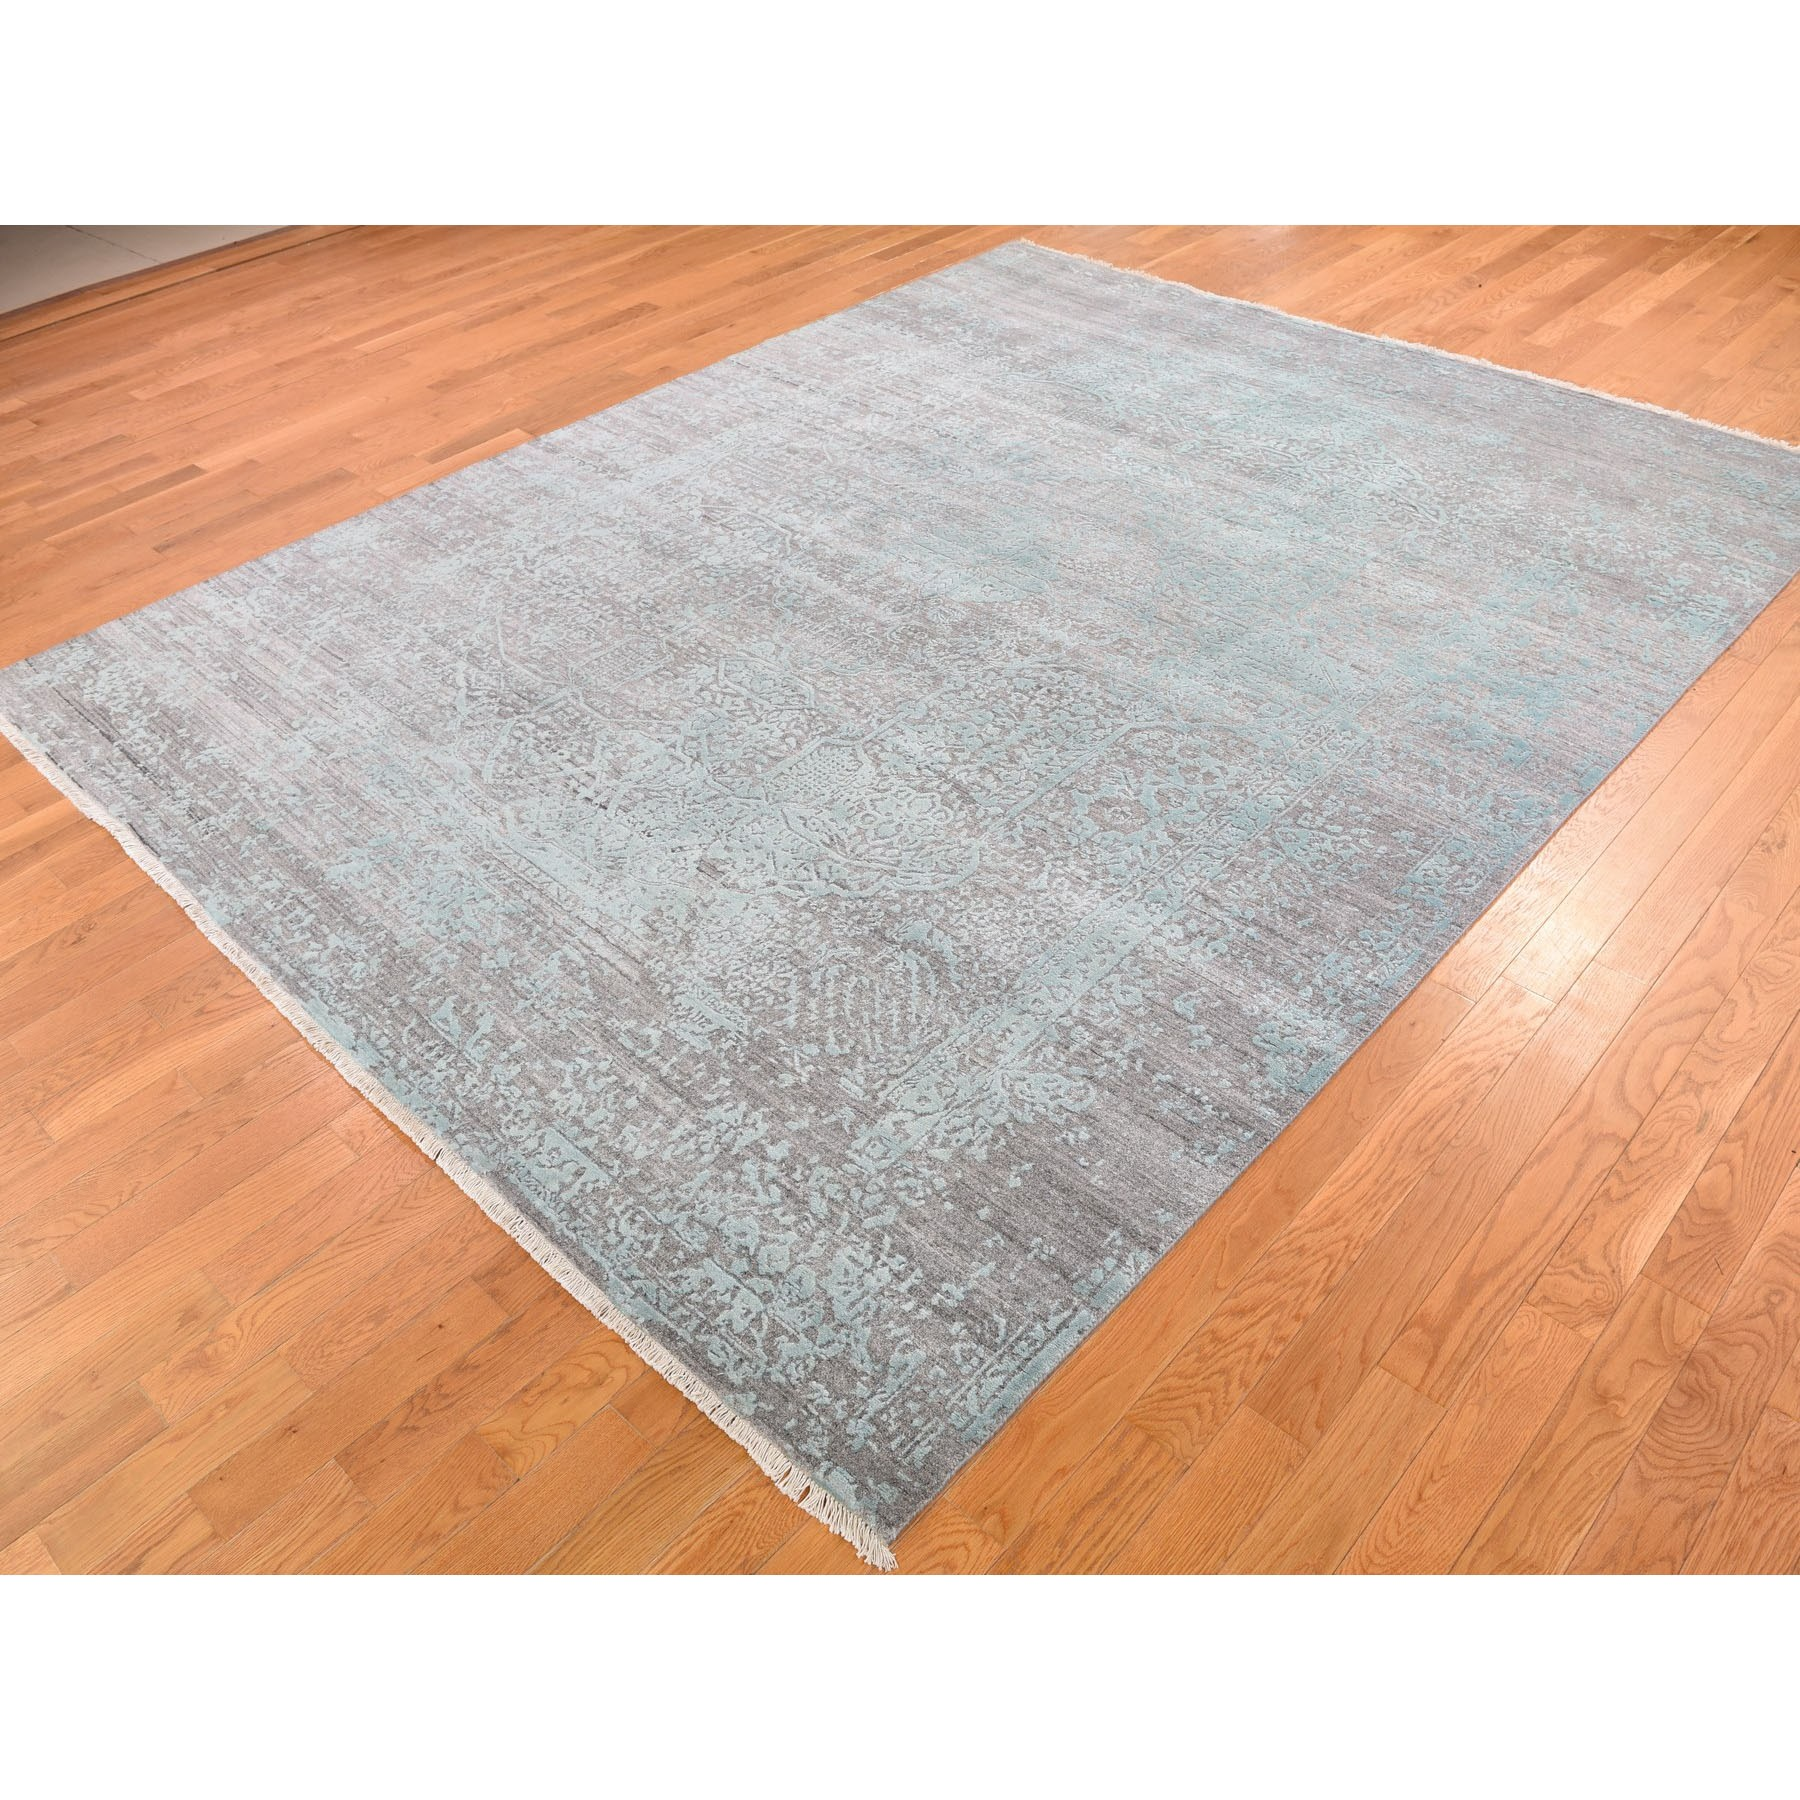 8'x10' Wool and Silk Hand Knotted Broken Persian Design Oriental Rug